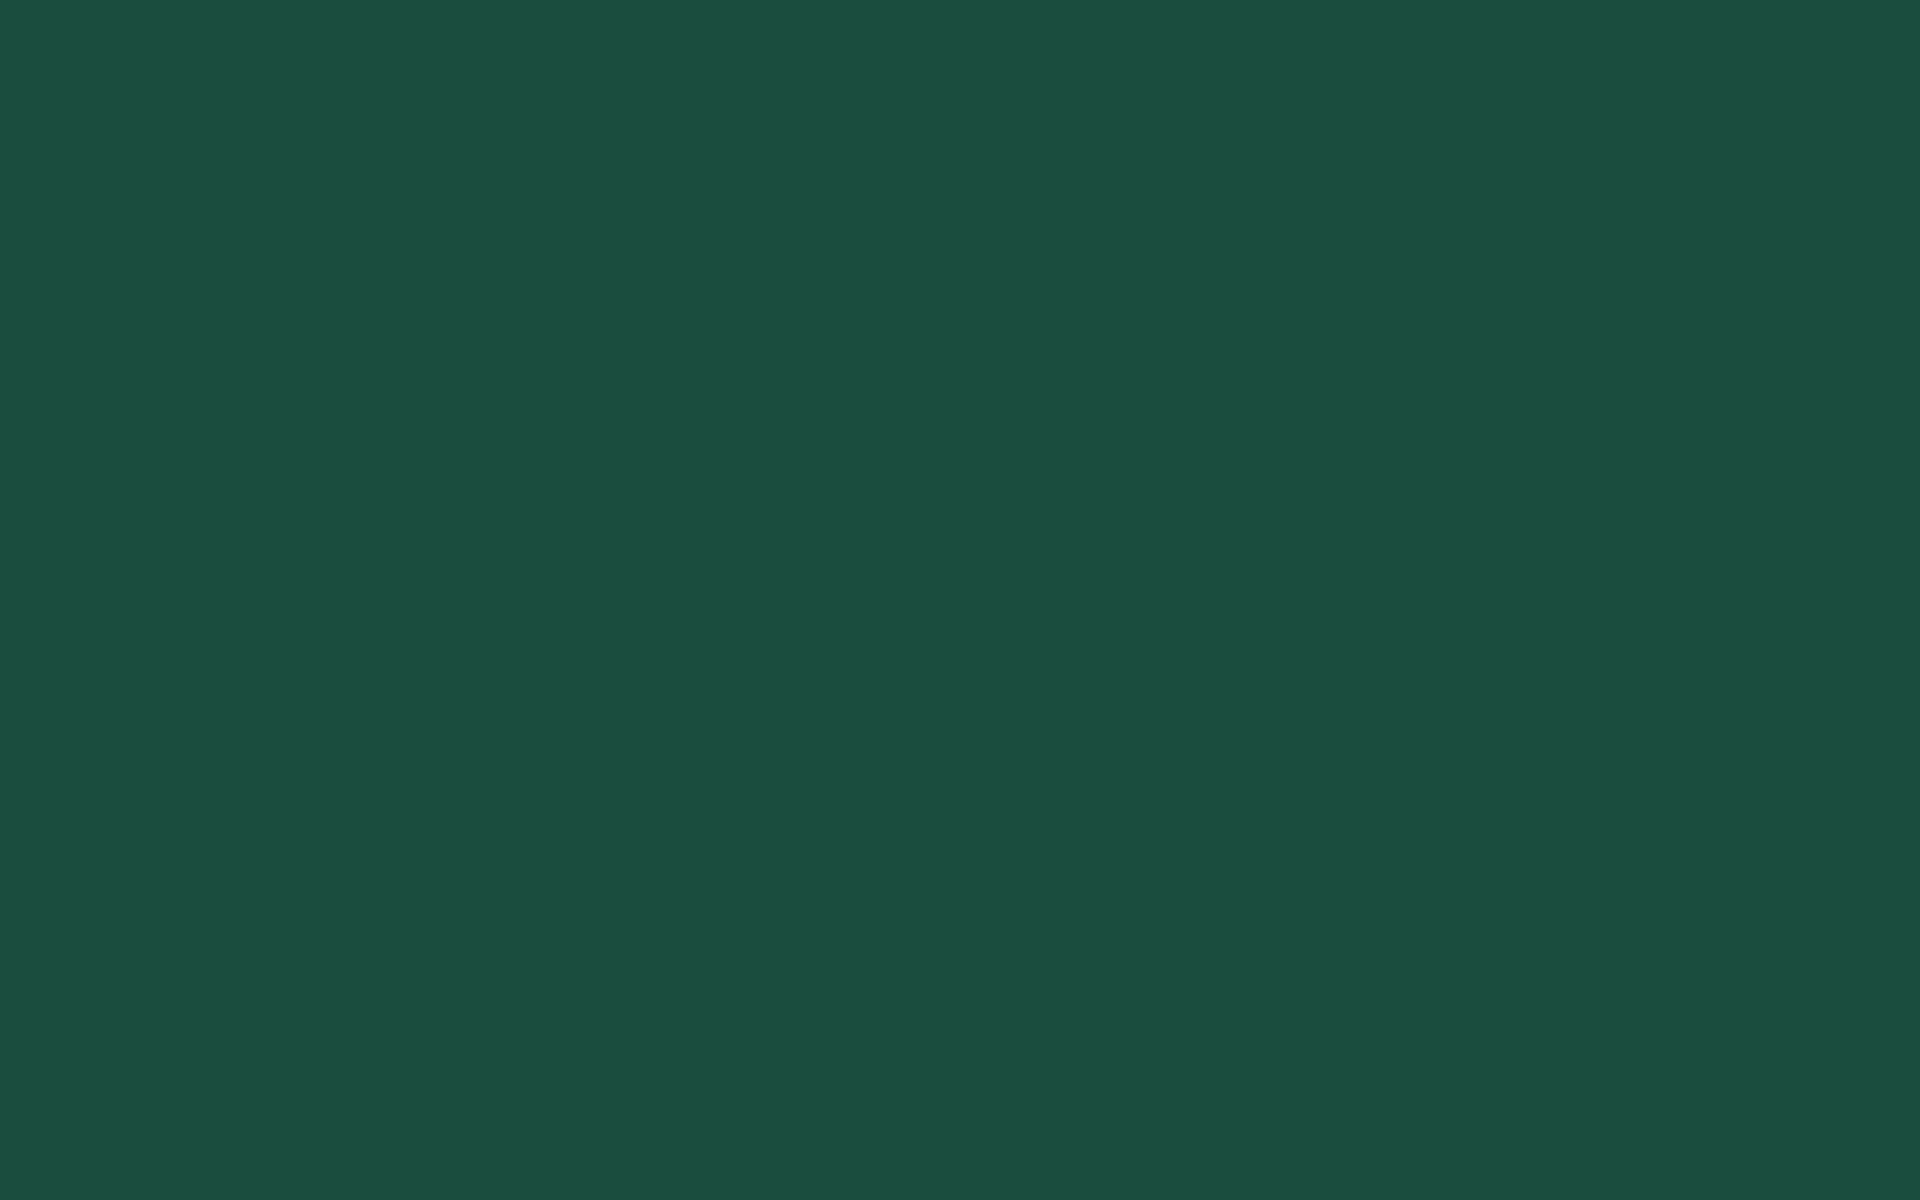 1920x1200 English Green Solid Color Background